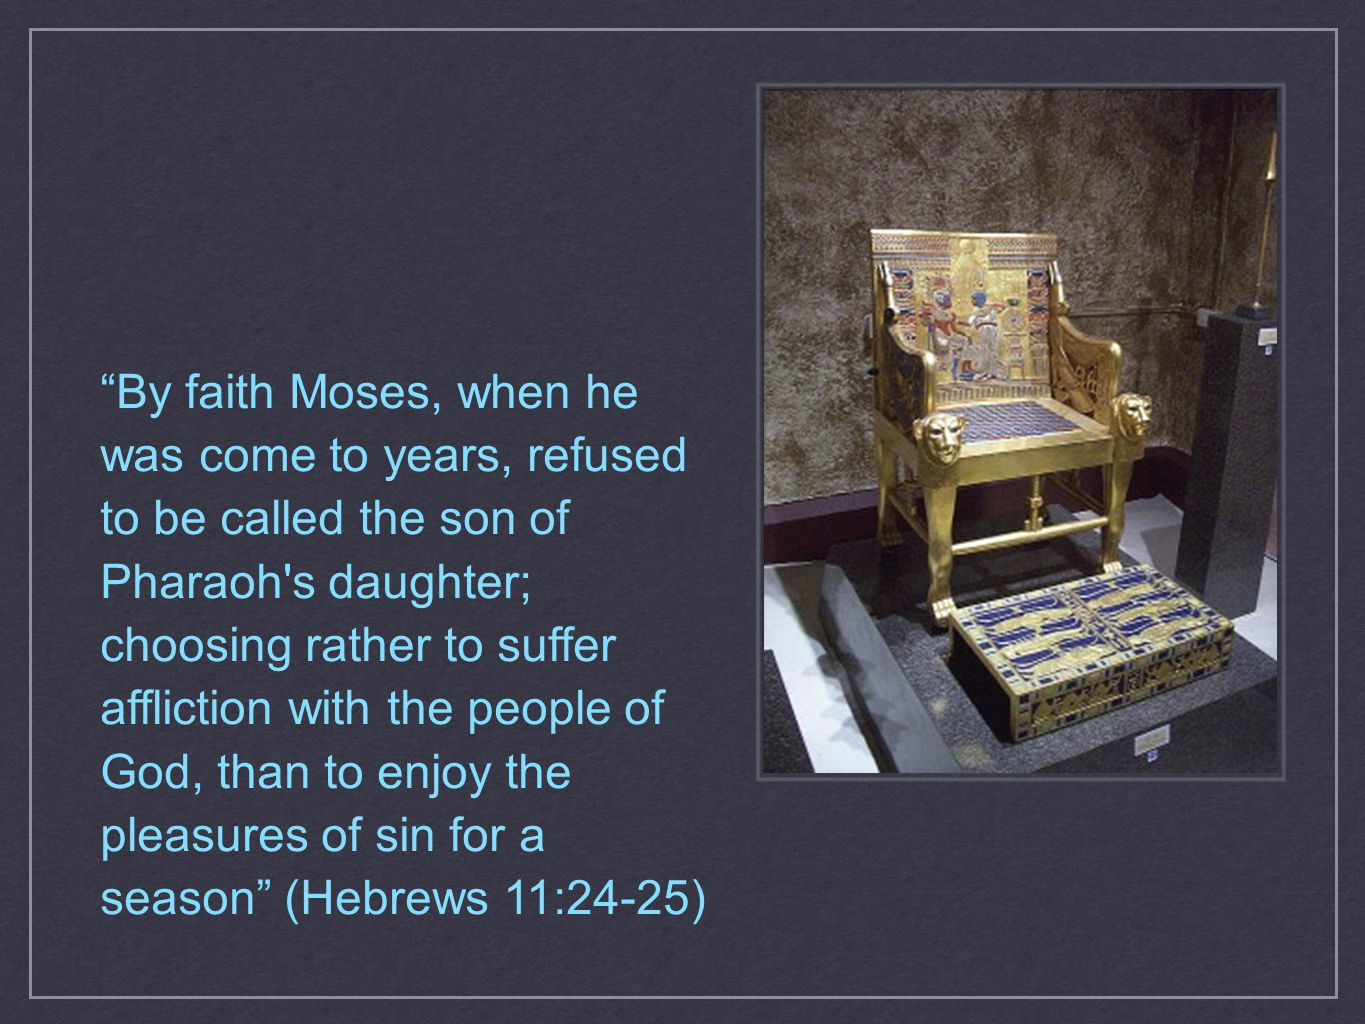 By faith Moses, when he was come to years, refused to be called the son of Pharaoh s daughter; choosing rather to suffer affliction with the people of God, than to enjoy the pleasures of sin for a season (Hebrews 11:24-25)